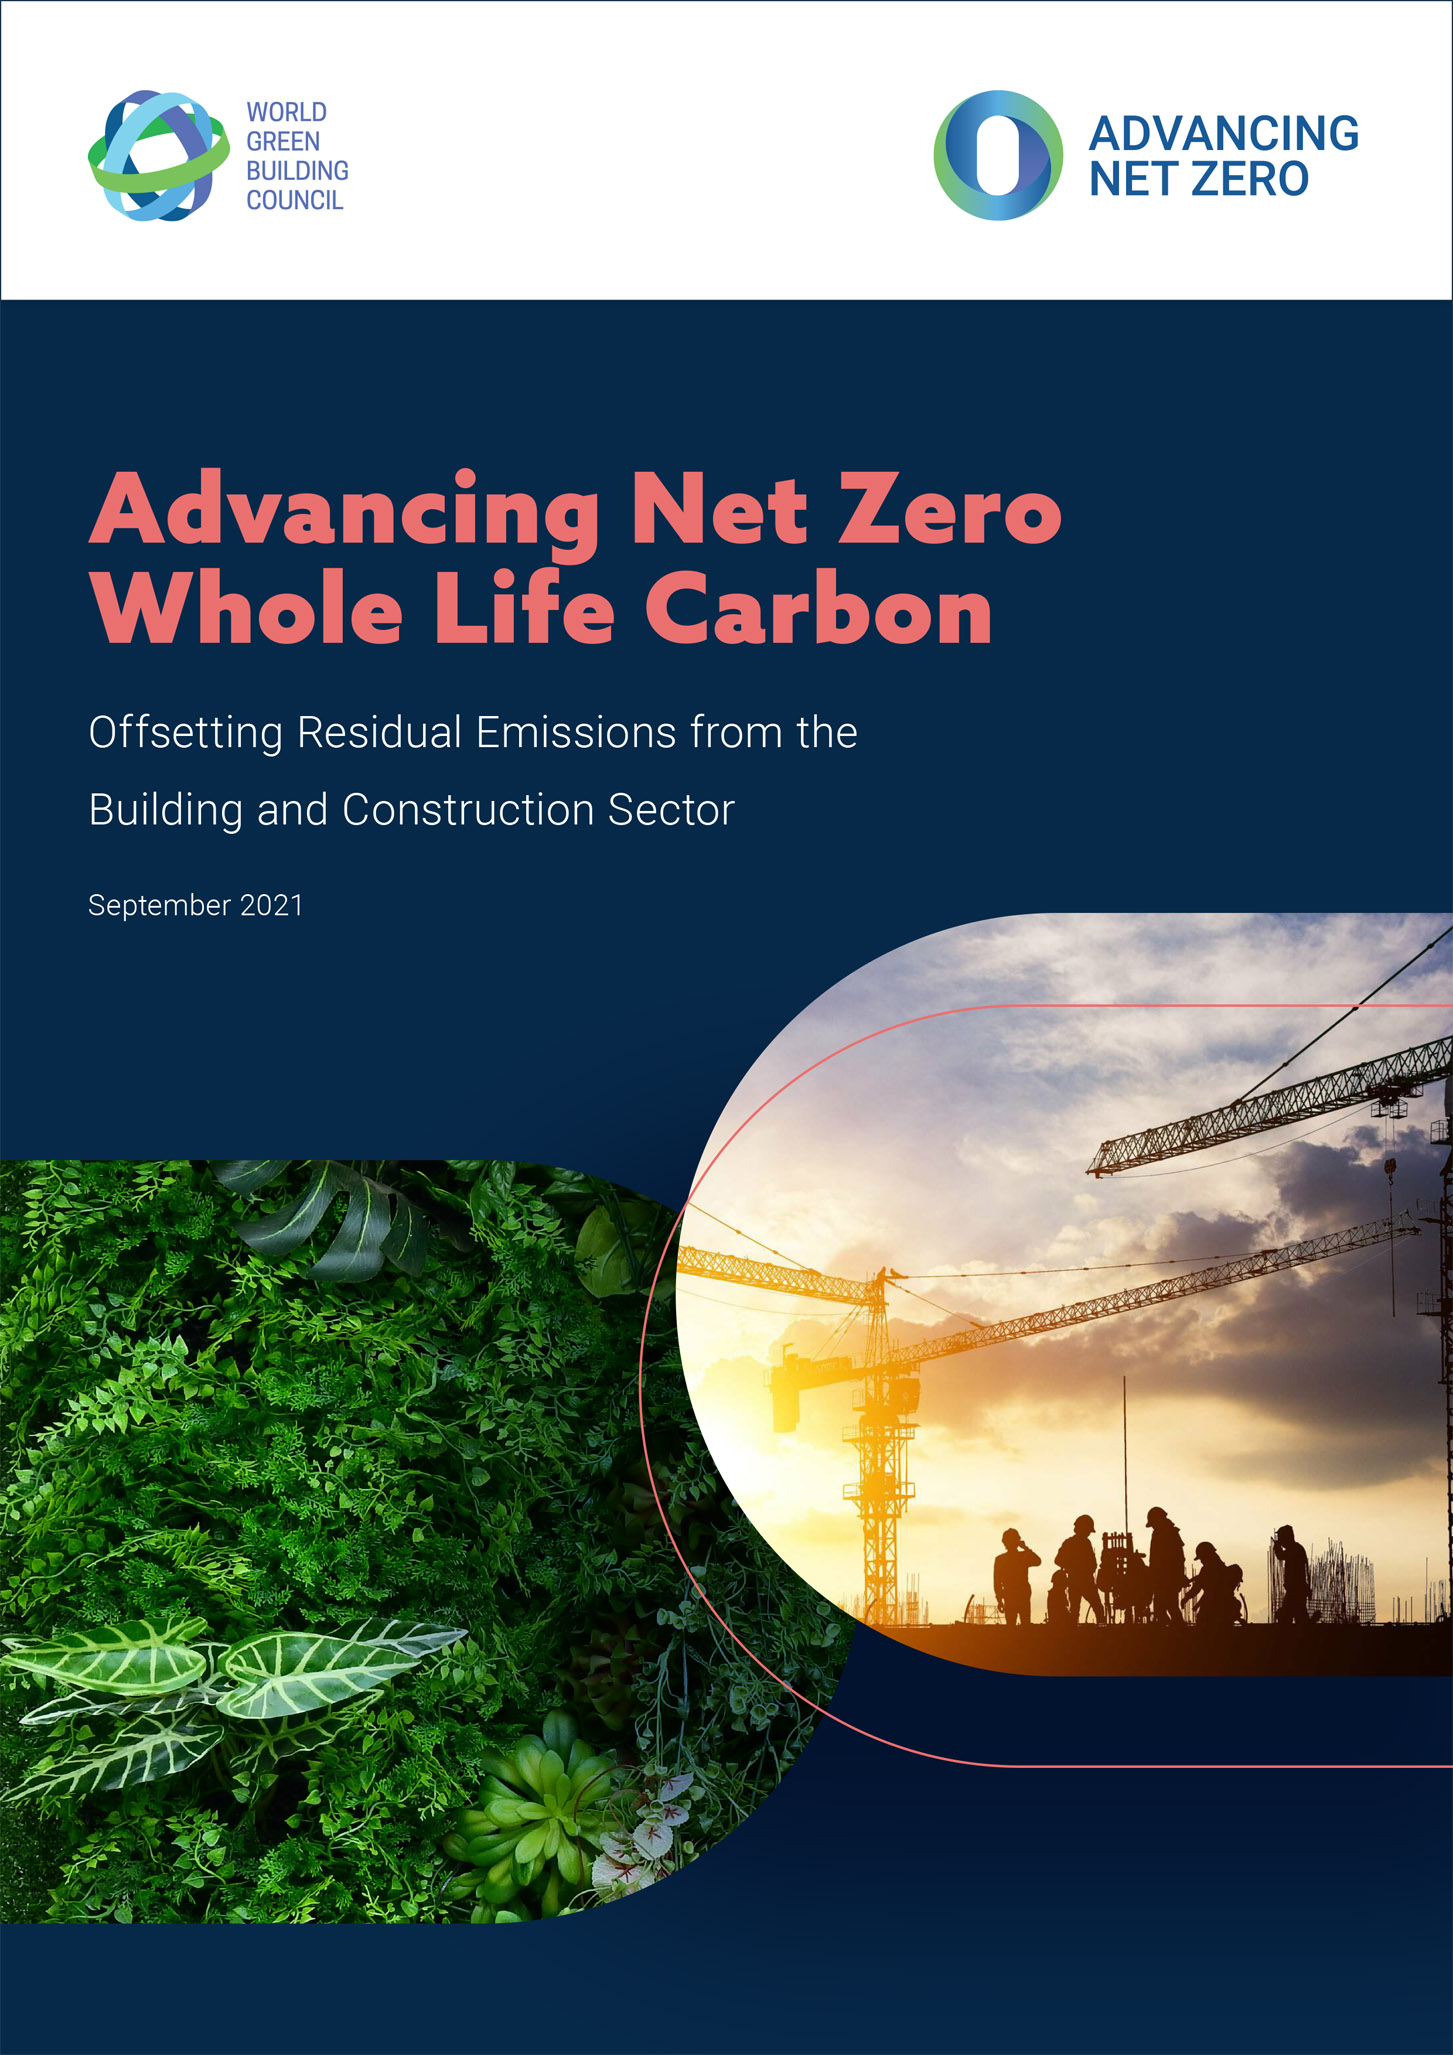 WorldGBC Net Zero Carbon Buildings Commitment expands scope to include embodied carbon